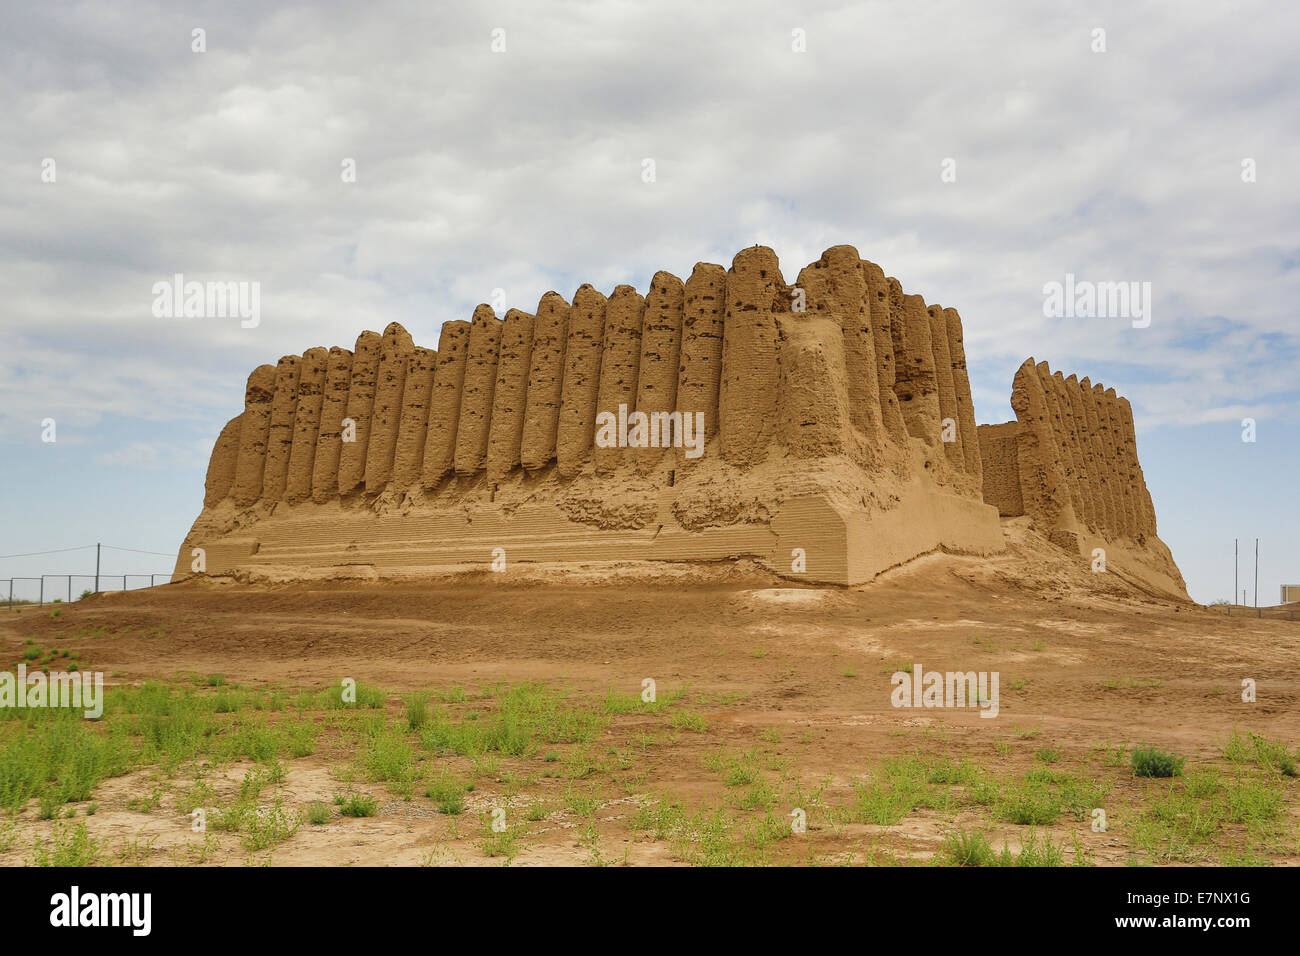 Ancient, Kyz- Kala, Merv, Turkmenistan, Central Asia, Asia, archaeology, architecture, big, city, culture, history, - Stock Image